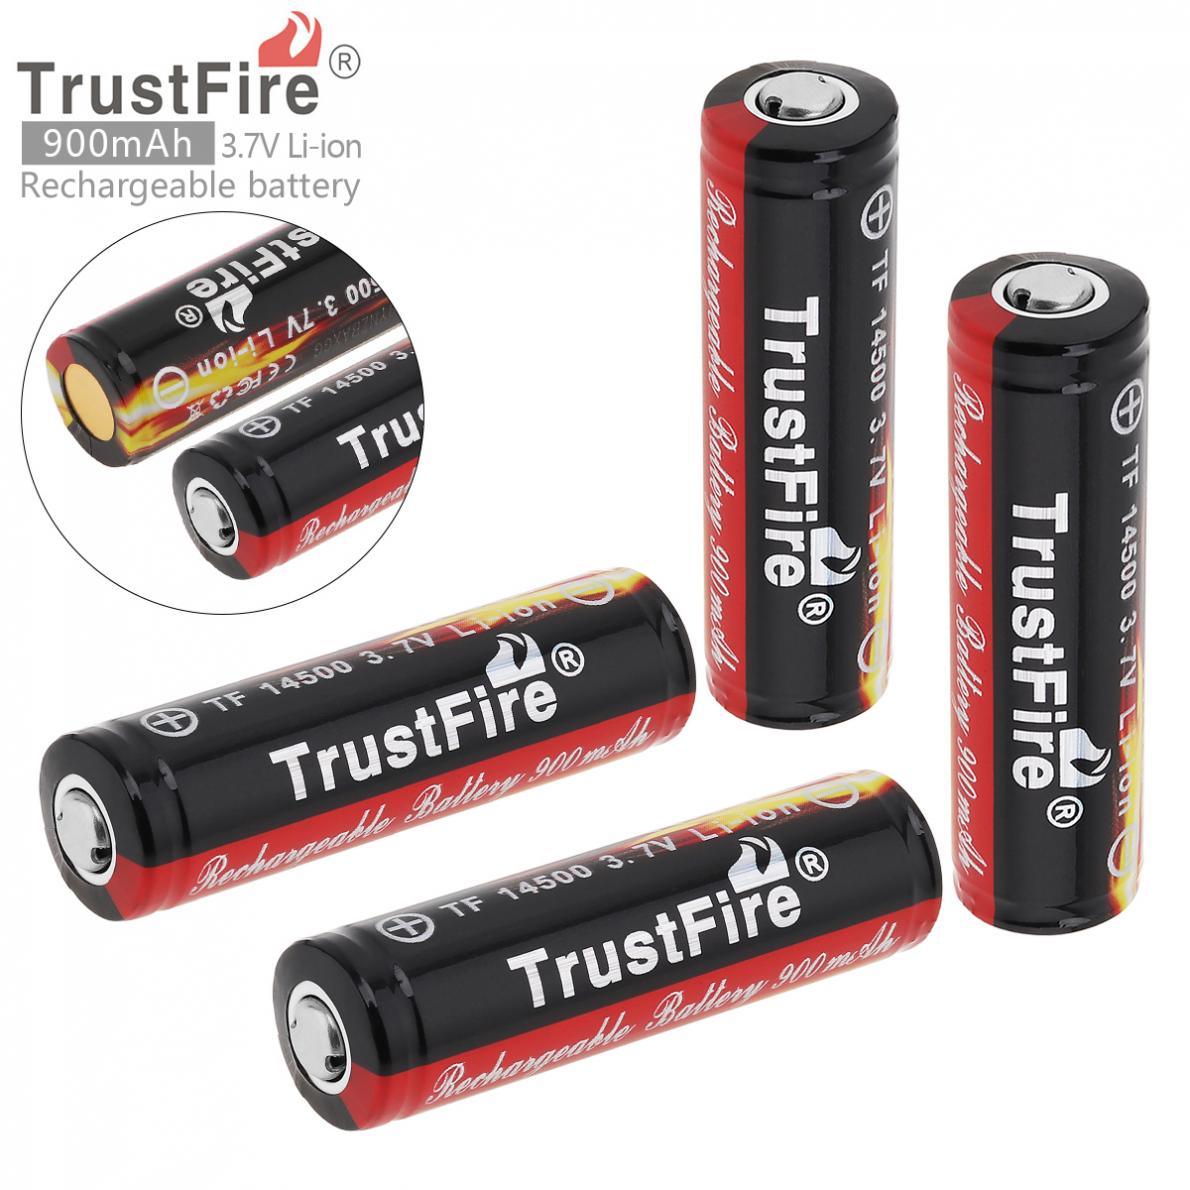 4 Pieces/set TrstFire 14500 Battery 3.7V ICR14500 900Mah Li-ion Rechargeable Battery Batteries Bateria For LED Flashlight стоимость